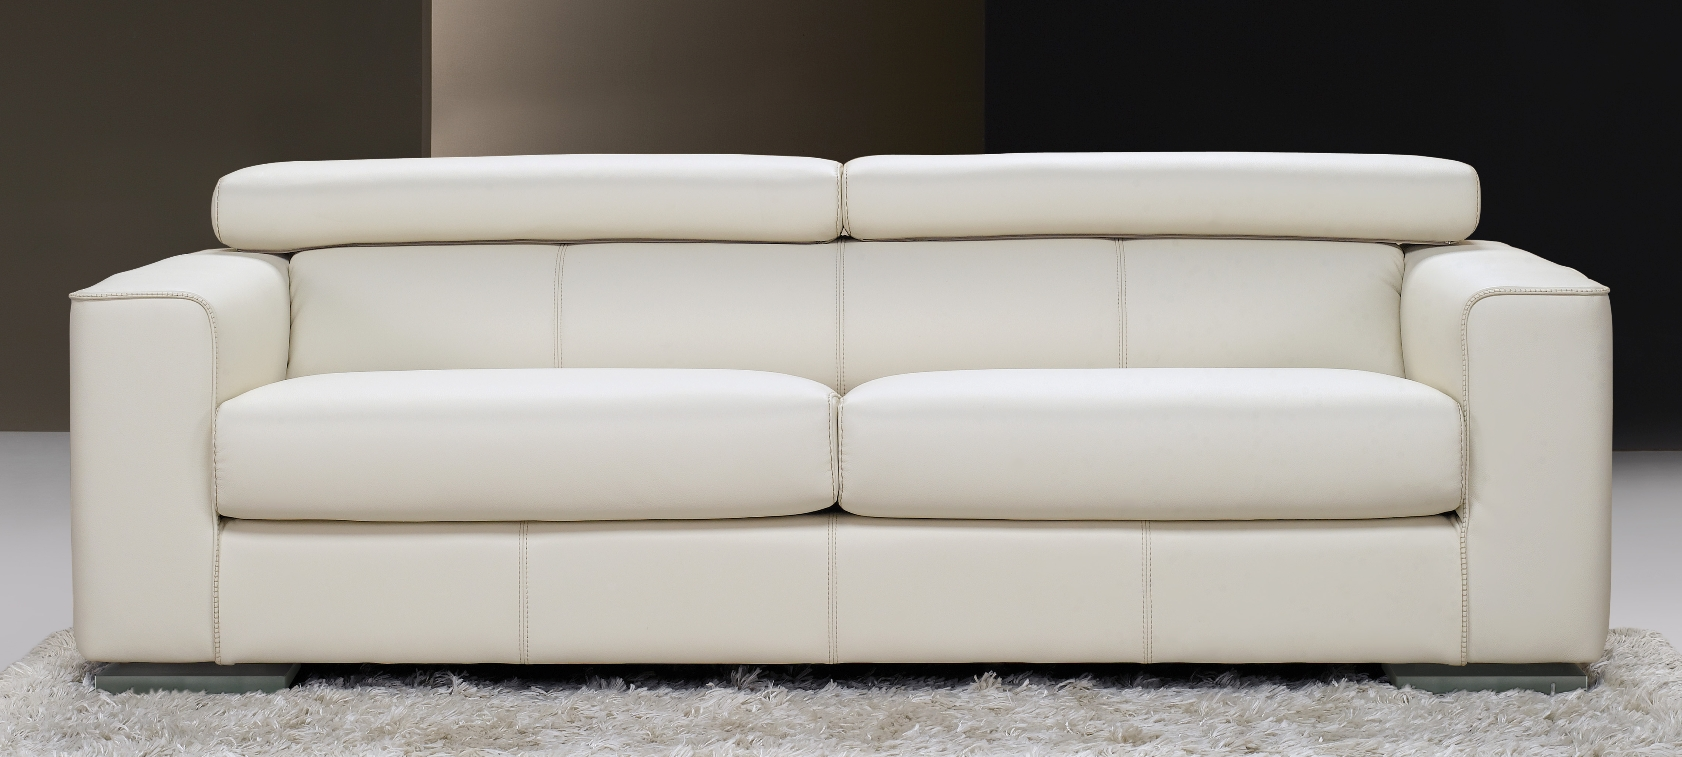 Modern luxury leather sofa fine home furnishings high quality furniture to suit all home decor Modern luxury sofa